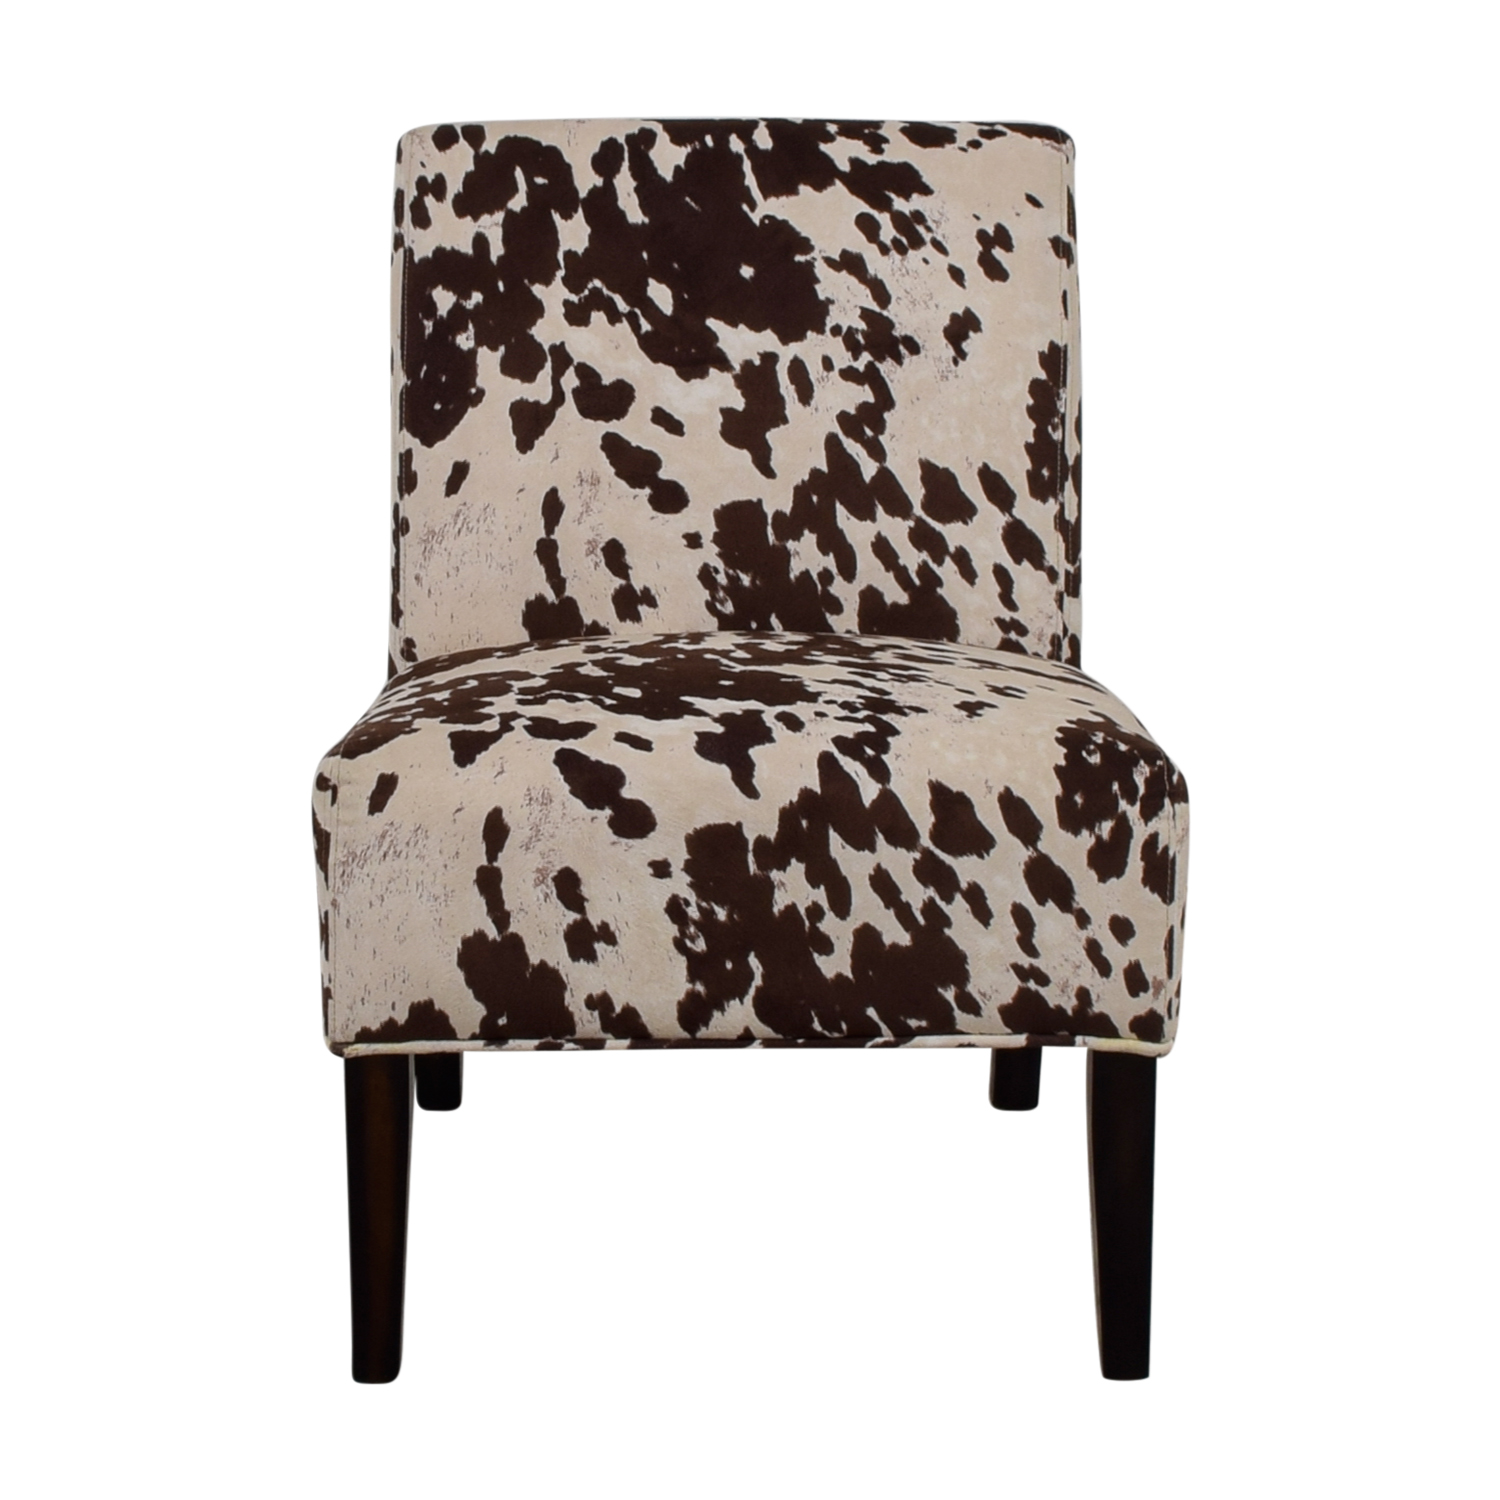 Buy Inspire Brown And Cream Faux Cow Hide Fabric Accent Chair Inspire Chairs  ...